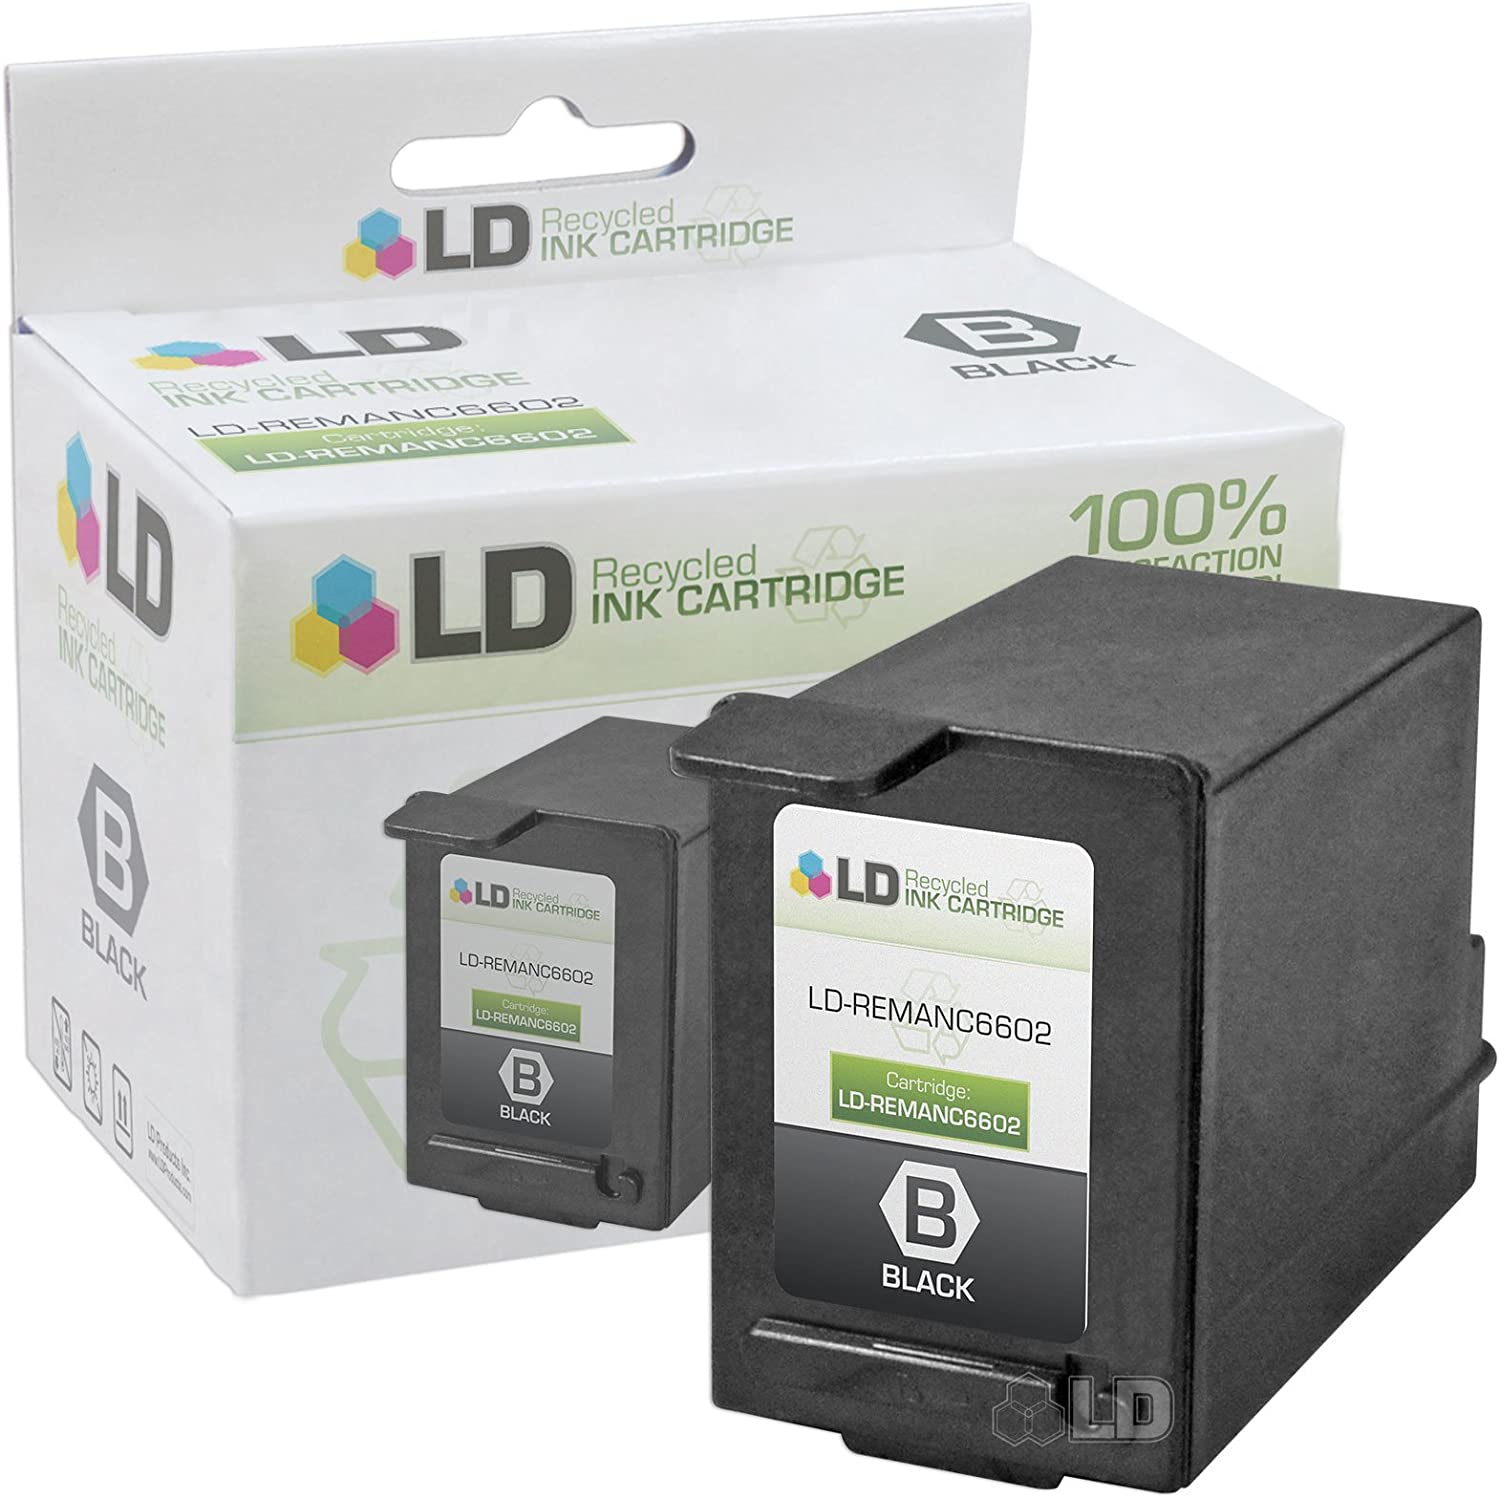 LD Remanufactured Ink Cartridge Replacement for HP C6602A (Black)